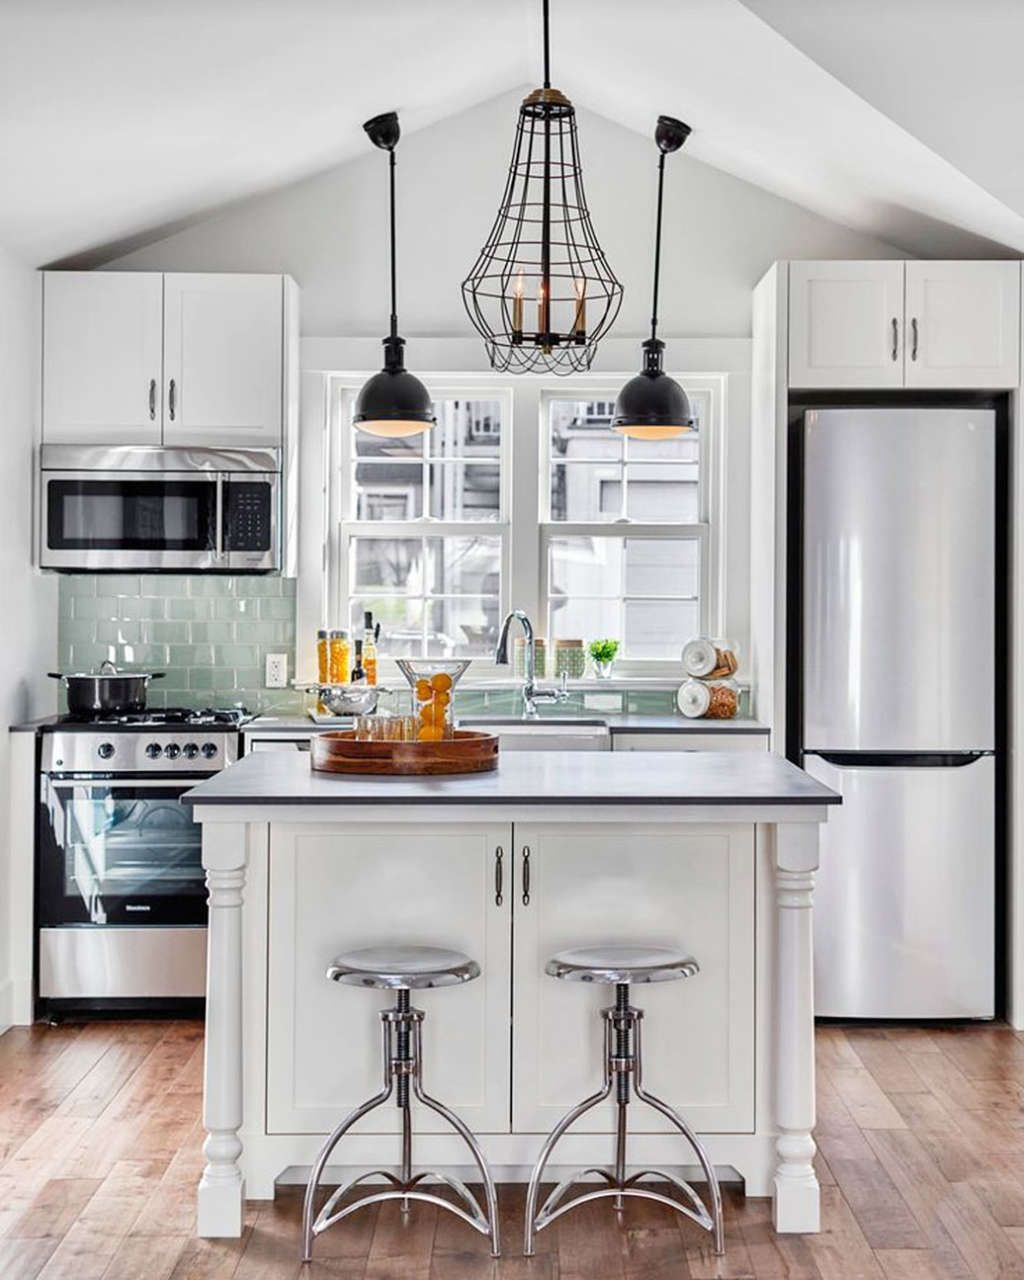 5 Smart Ways To Fit A Kitchen Island In A Small Space